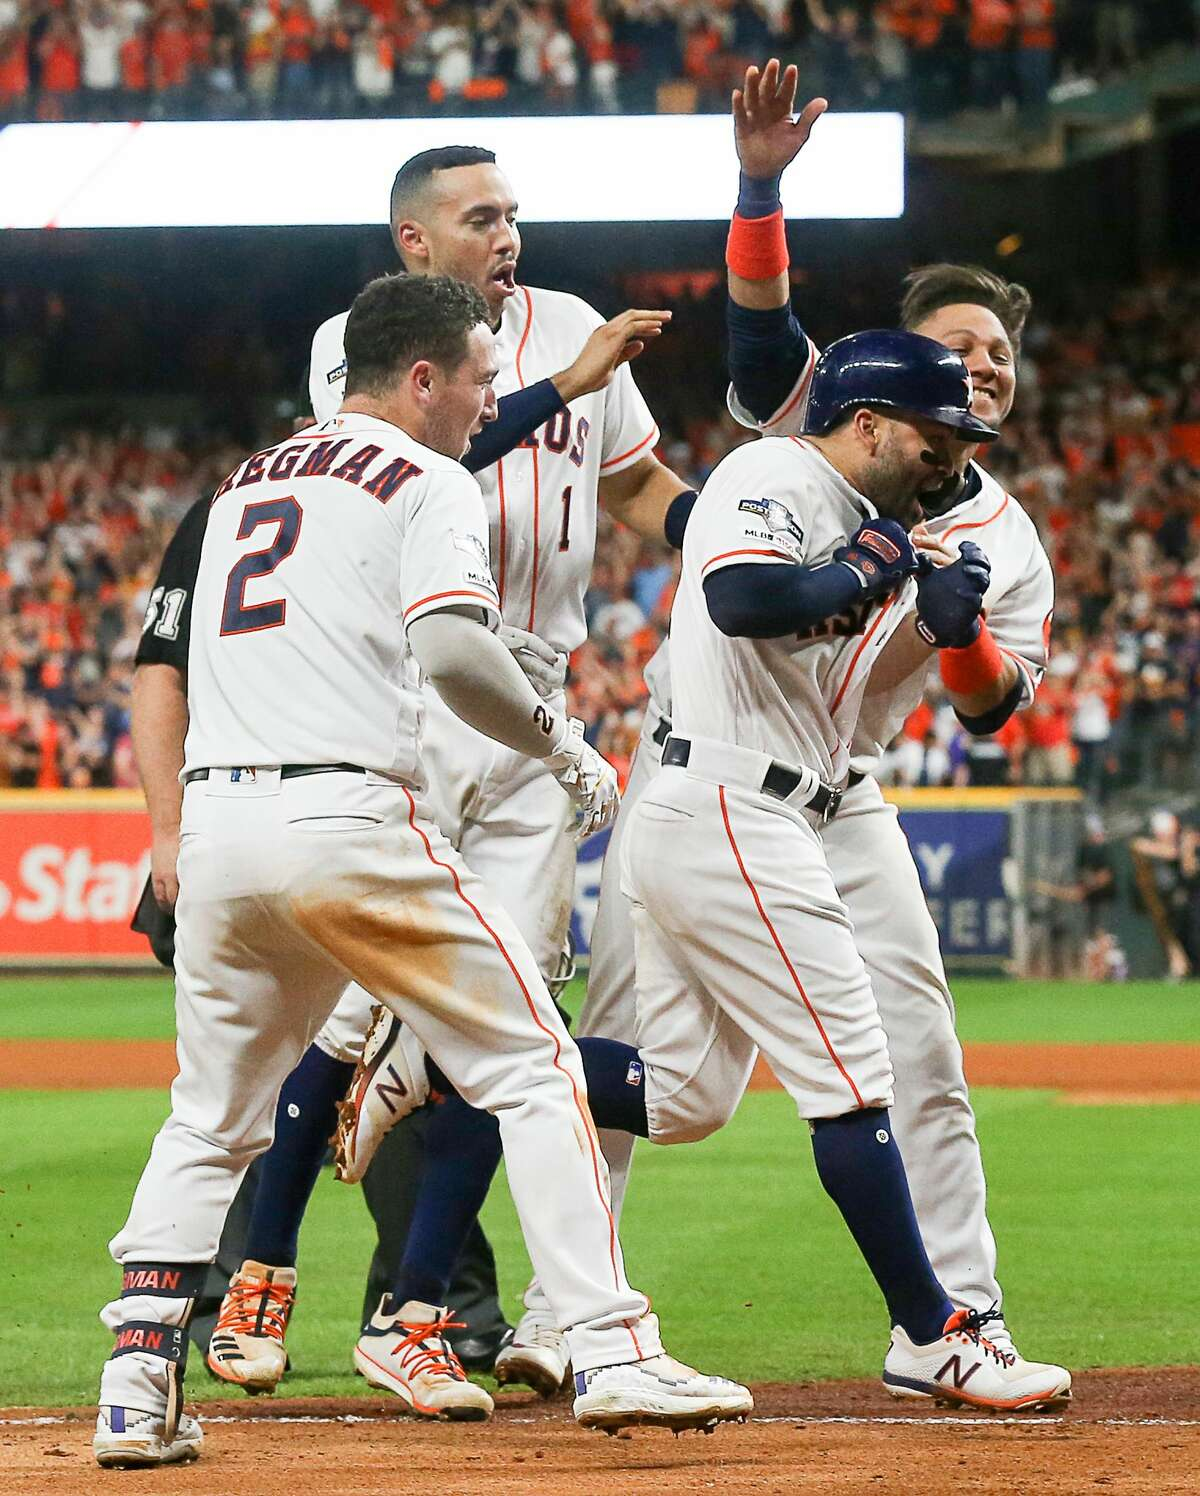 Jose Altuve bobbling his finger after crushing a game-winning homer to clinch the American League championship against the New York Yankees in 2019. The second baseman was wagging his finger to his teammates, telling them to not rip off his shirt and reveal a personal tattoo of his wife's name.